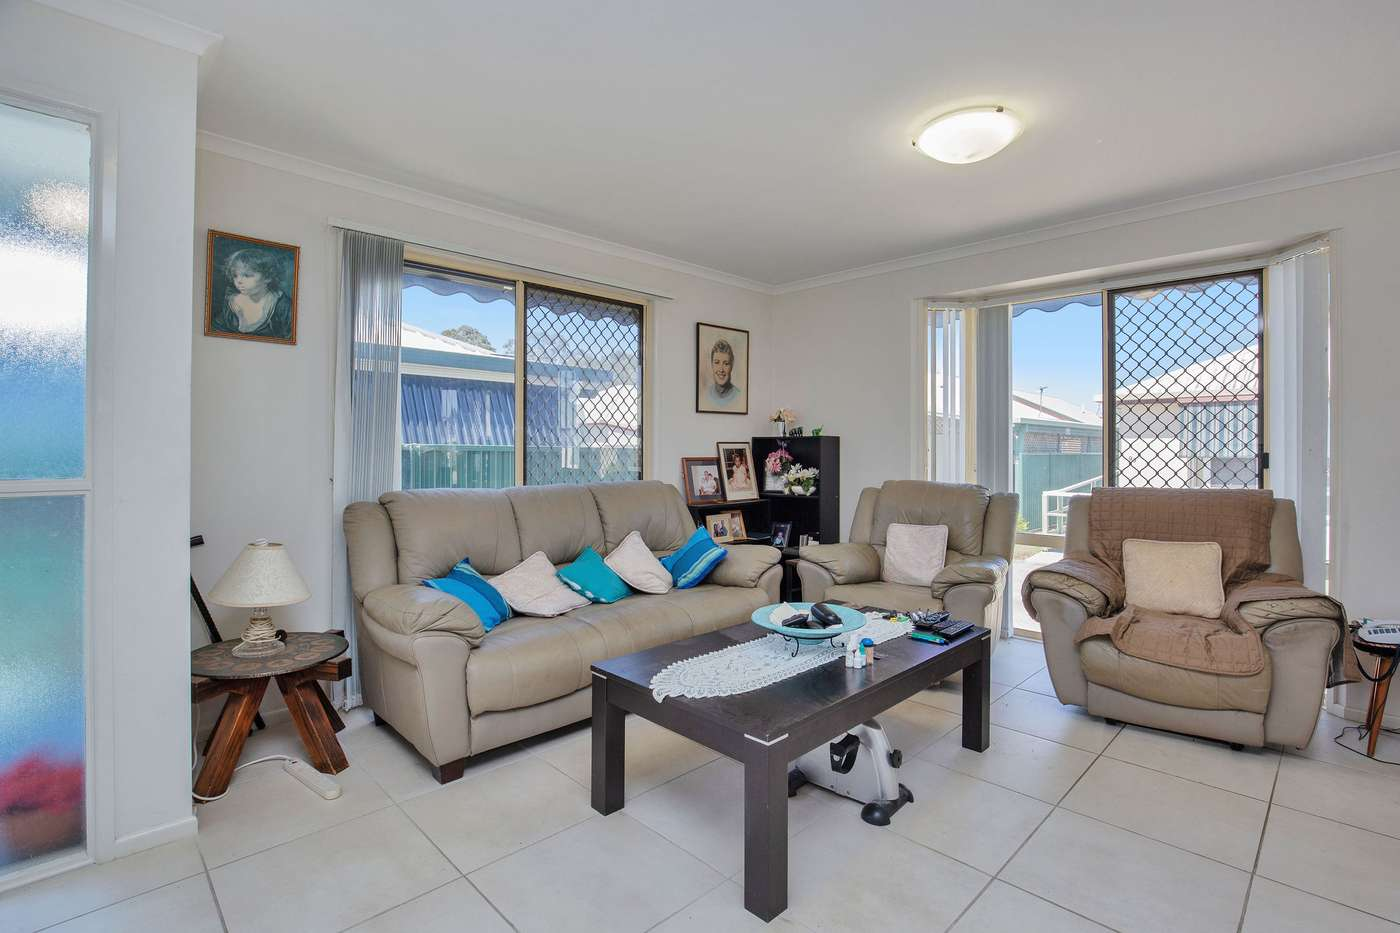 Main view of Homely house listing, 82/70 'Living Gems' Hansford Road, Coombabah, QLD 4216